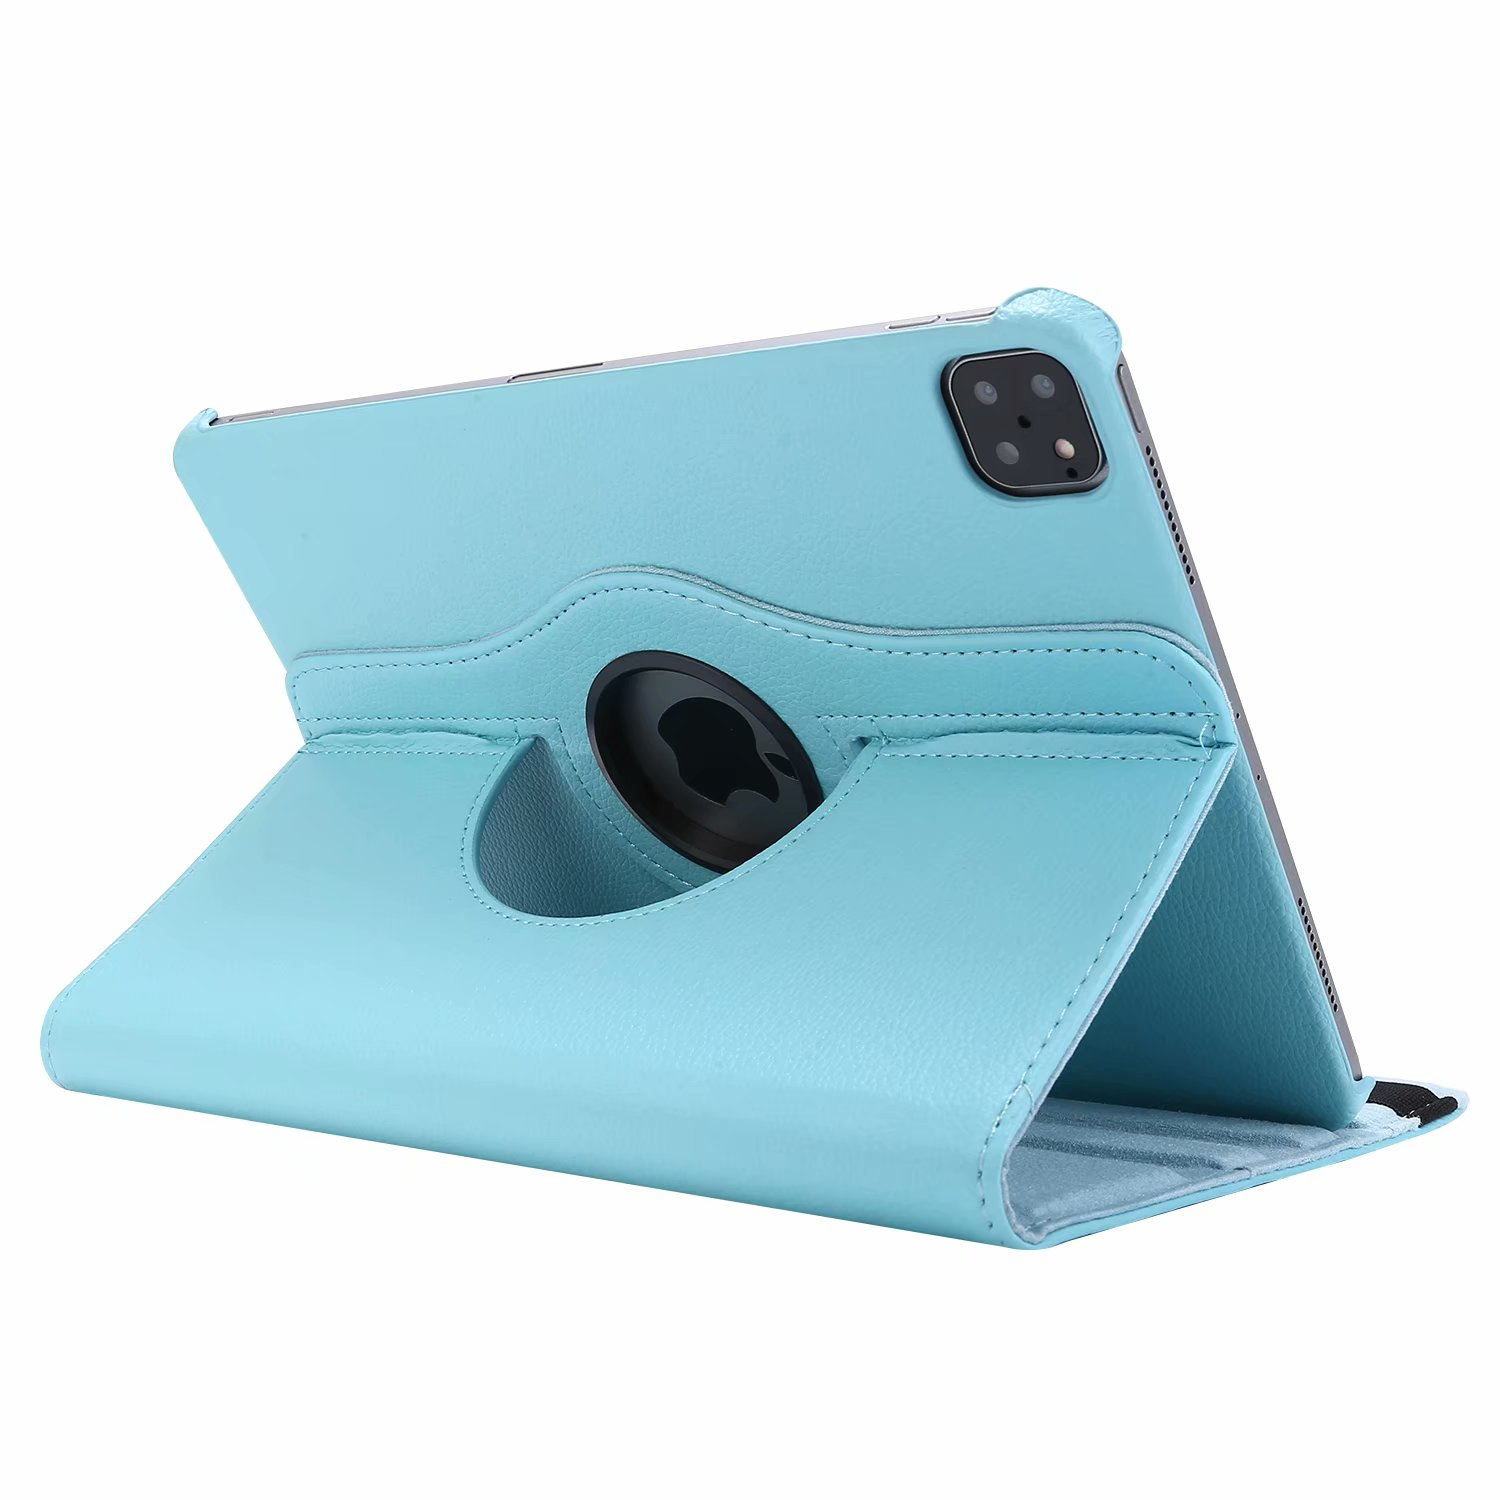 Cover for A2228 A1934 A1980 A2013 2021/2020/2018 Degree 360 A2230 A2068 11 iPad Pro Case